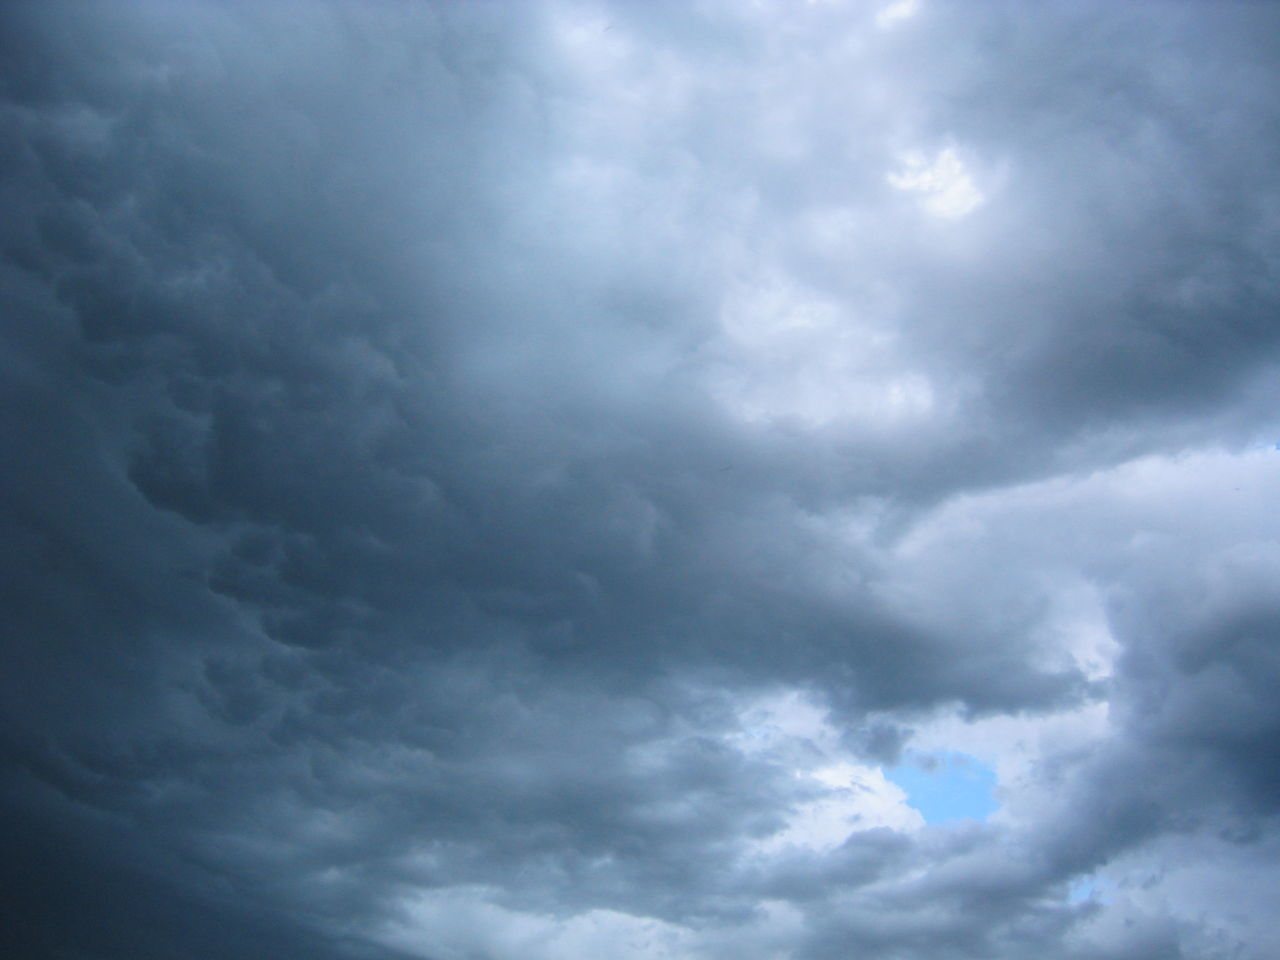 cloud - sky, weather, atmospheric mood, beauty in nature, cloudscape, sky, nature, storm cloud, dramatic sky, storm, scenics, no people, backgrounds, tranquility, day, sky only, low angle view, outdoors